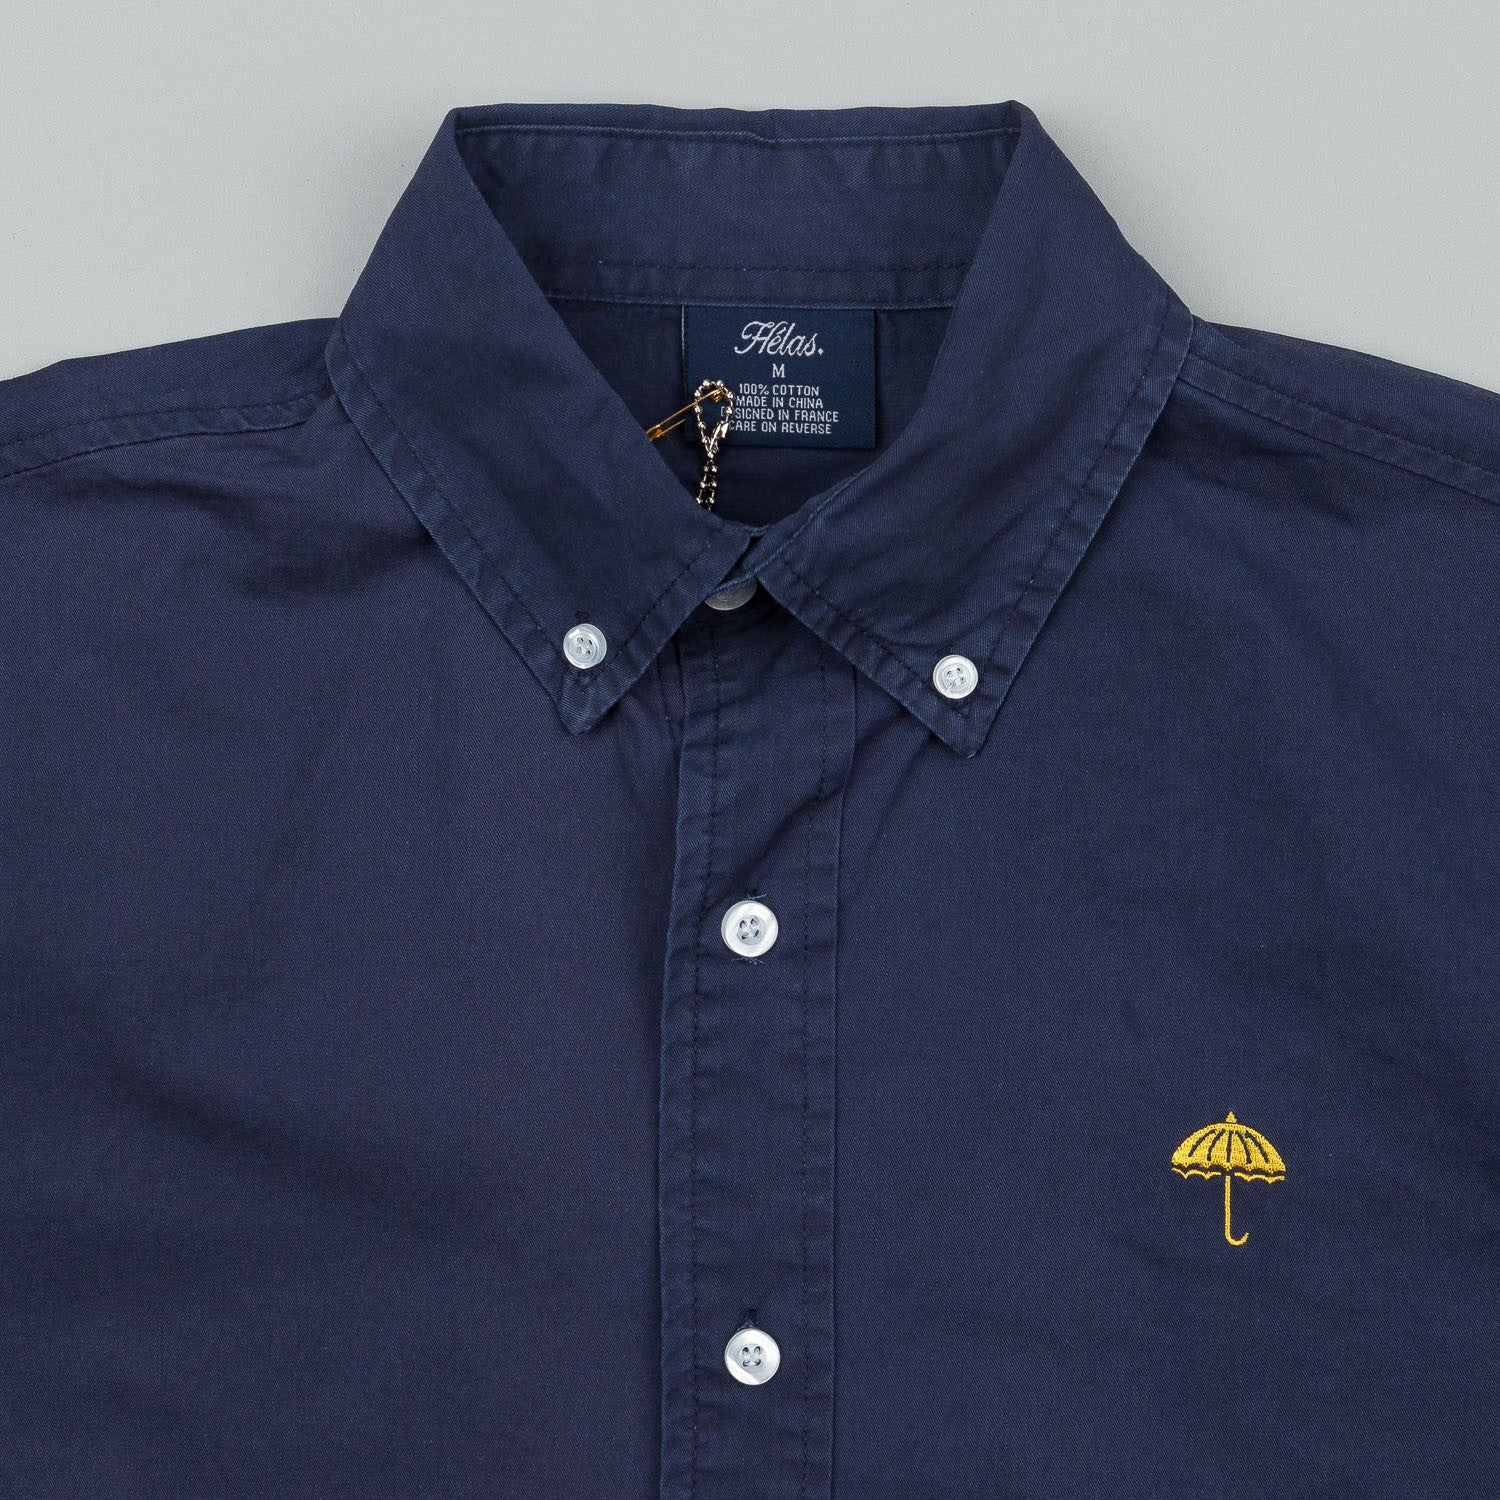 Helas Classic Long Sleeve Button Shirt - Navy